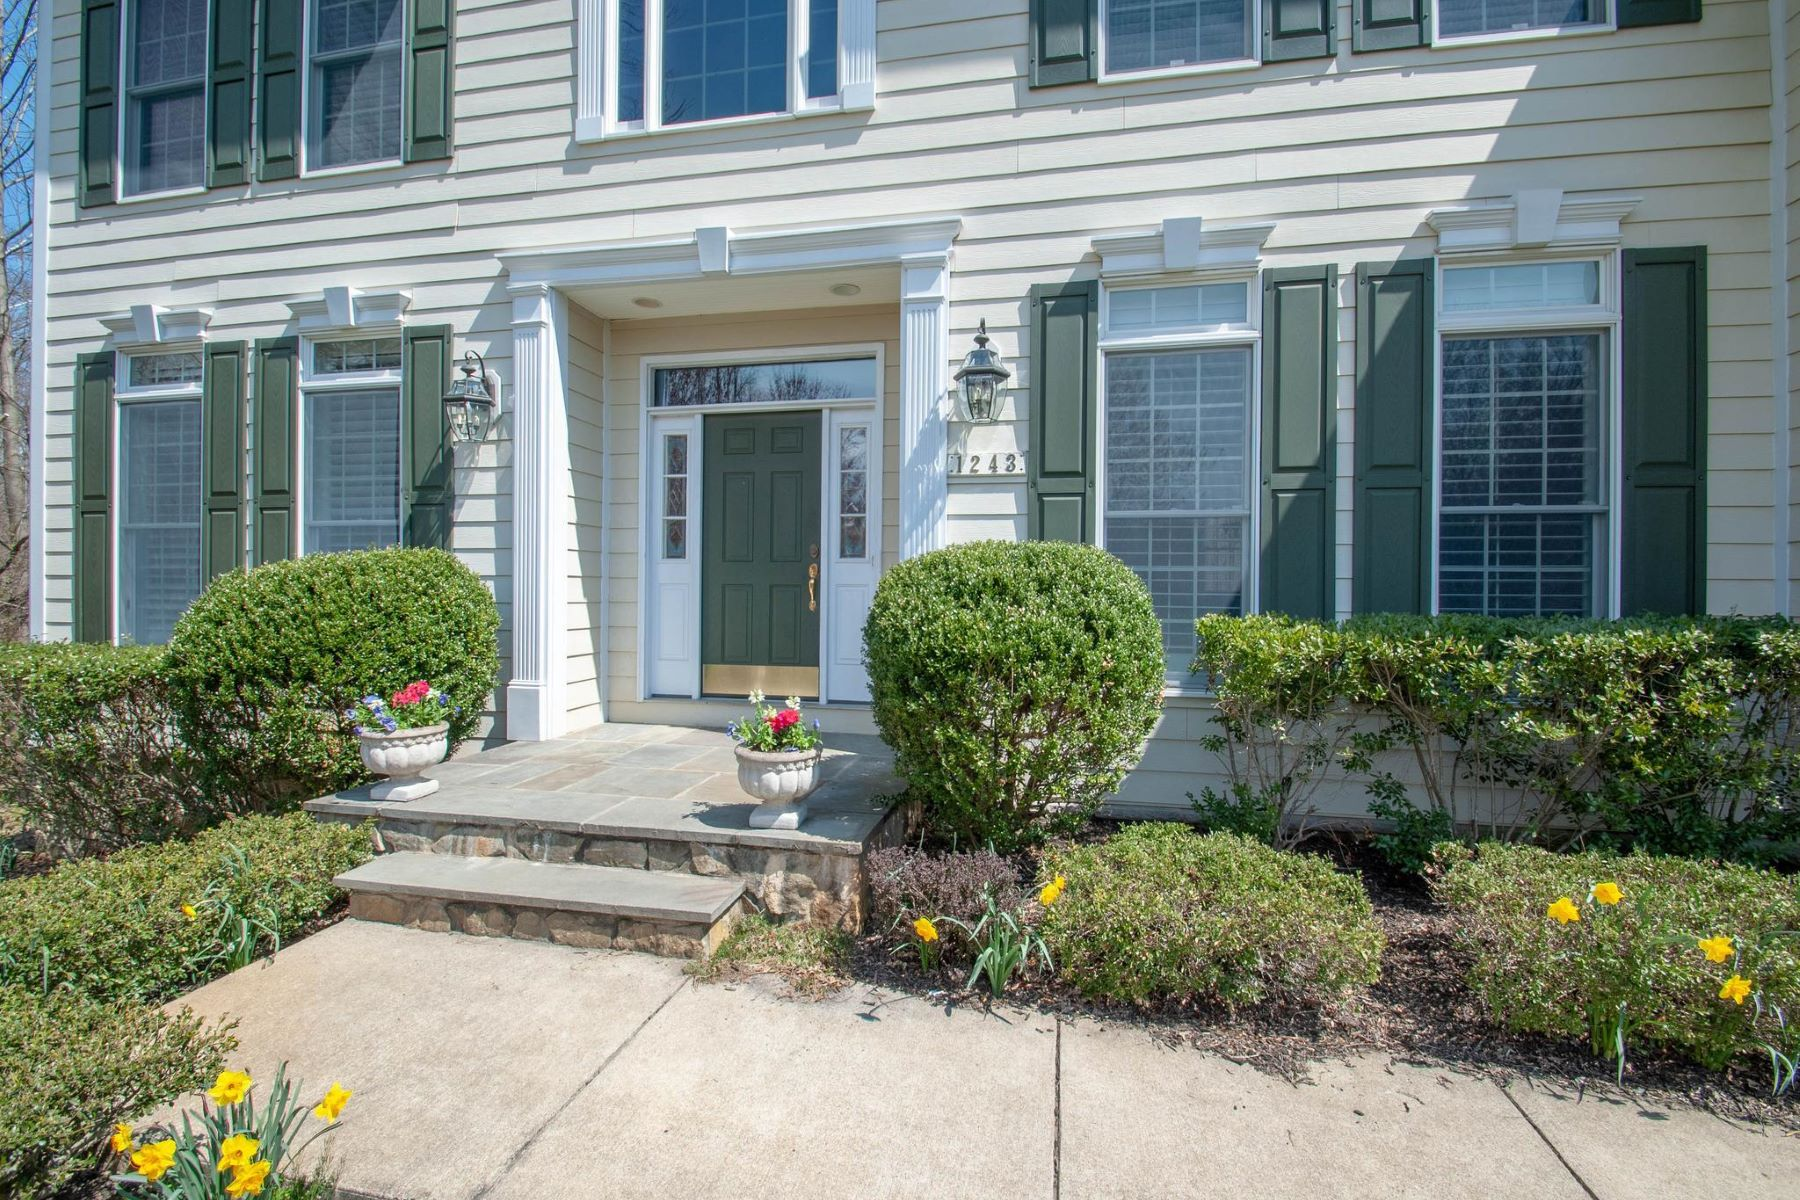 Single Family Homes for Sale at 1243 Stillwoods Way Annapolis, Maryland 21403 United States